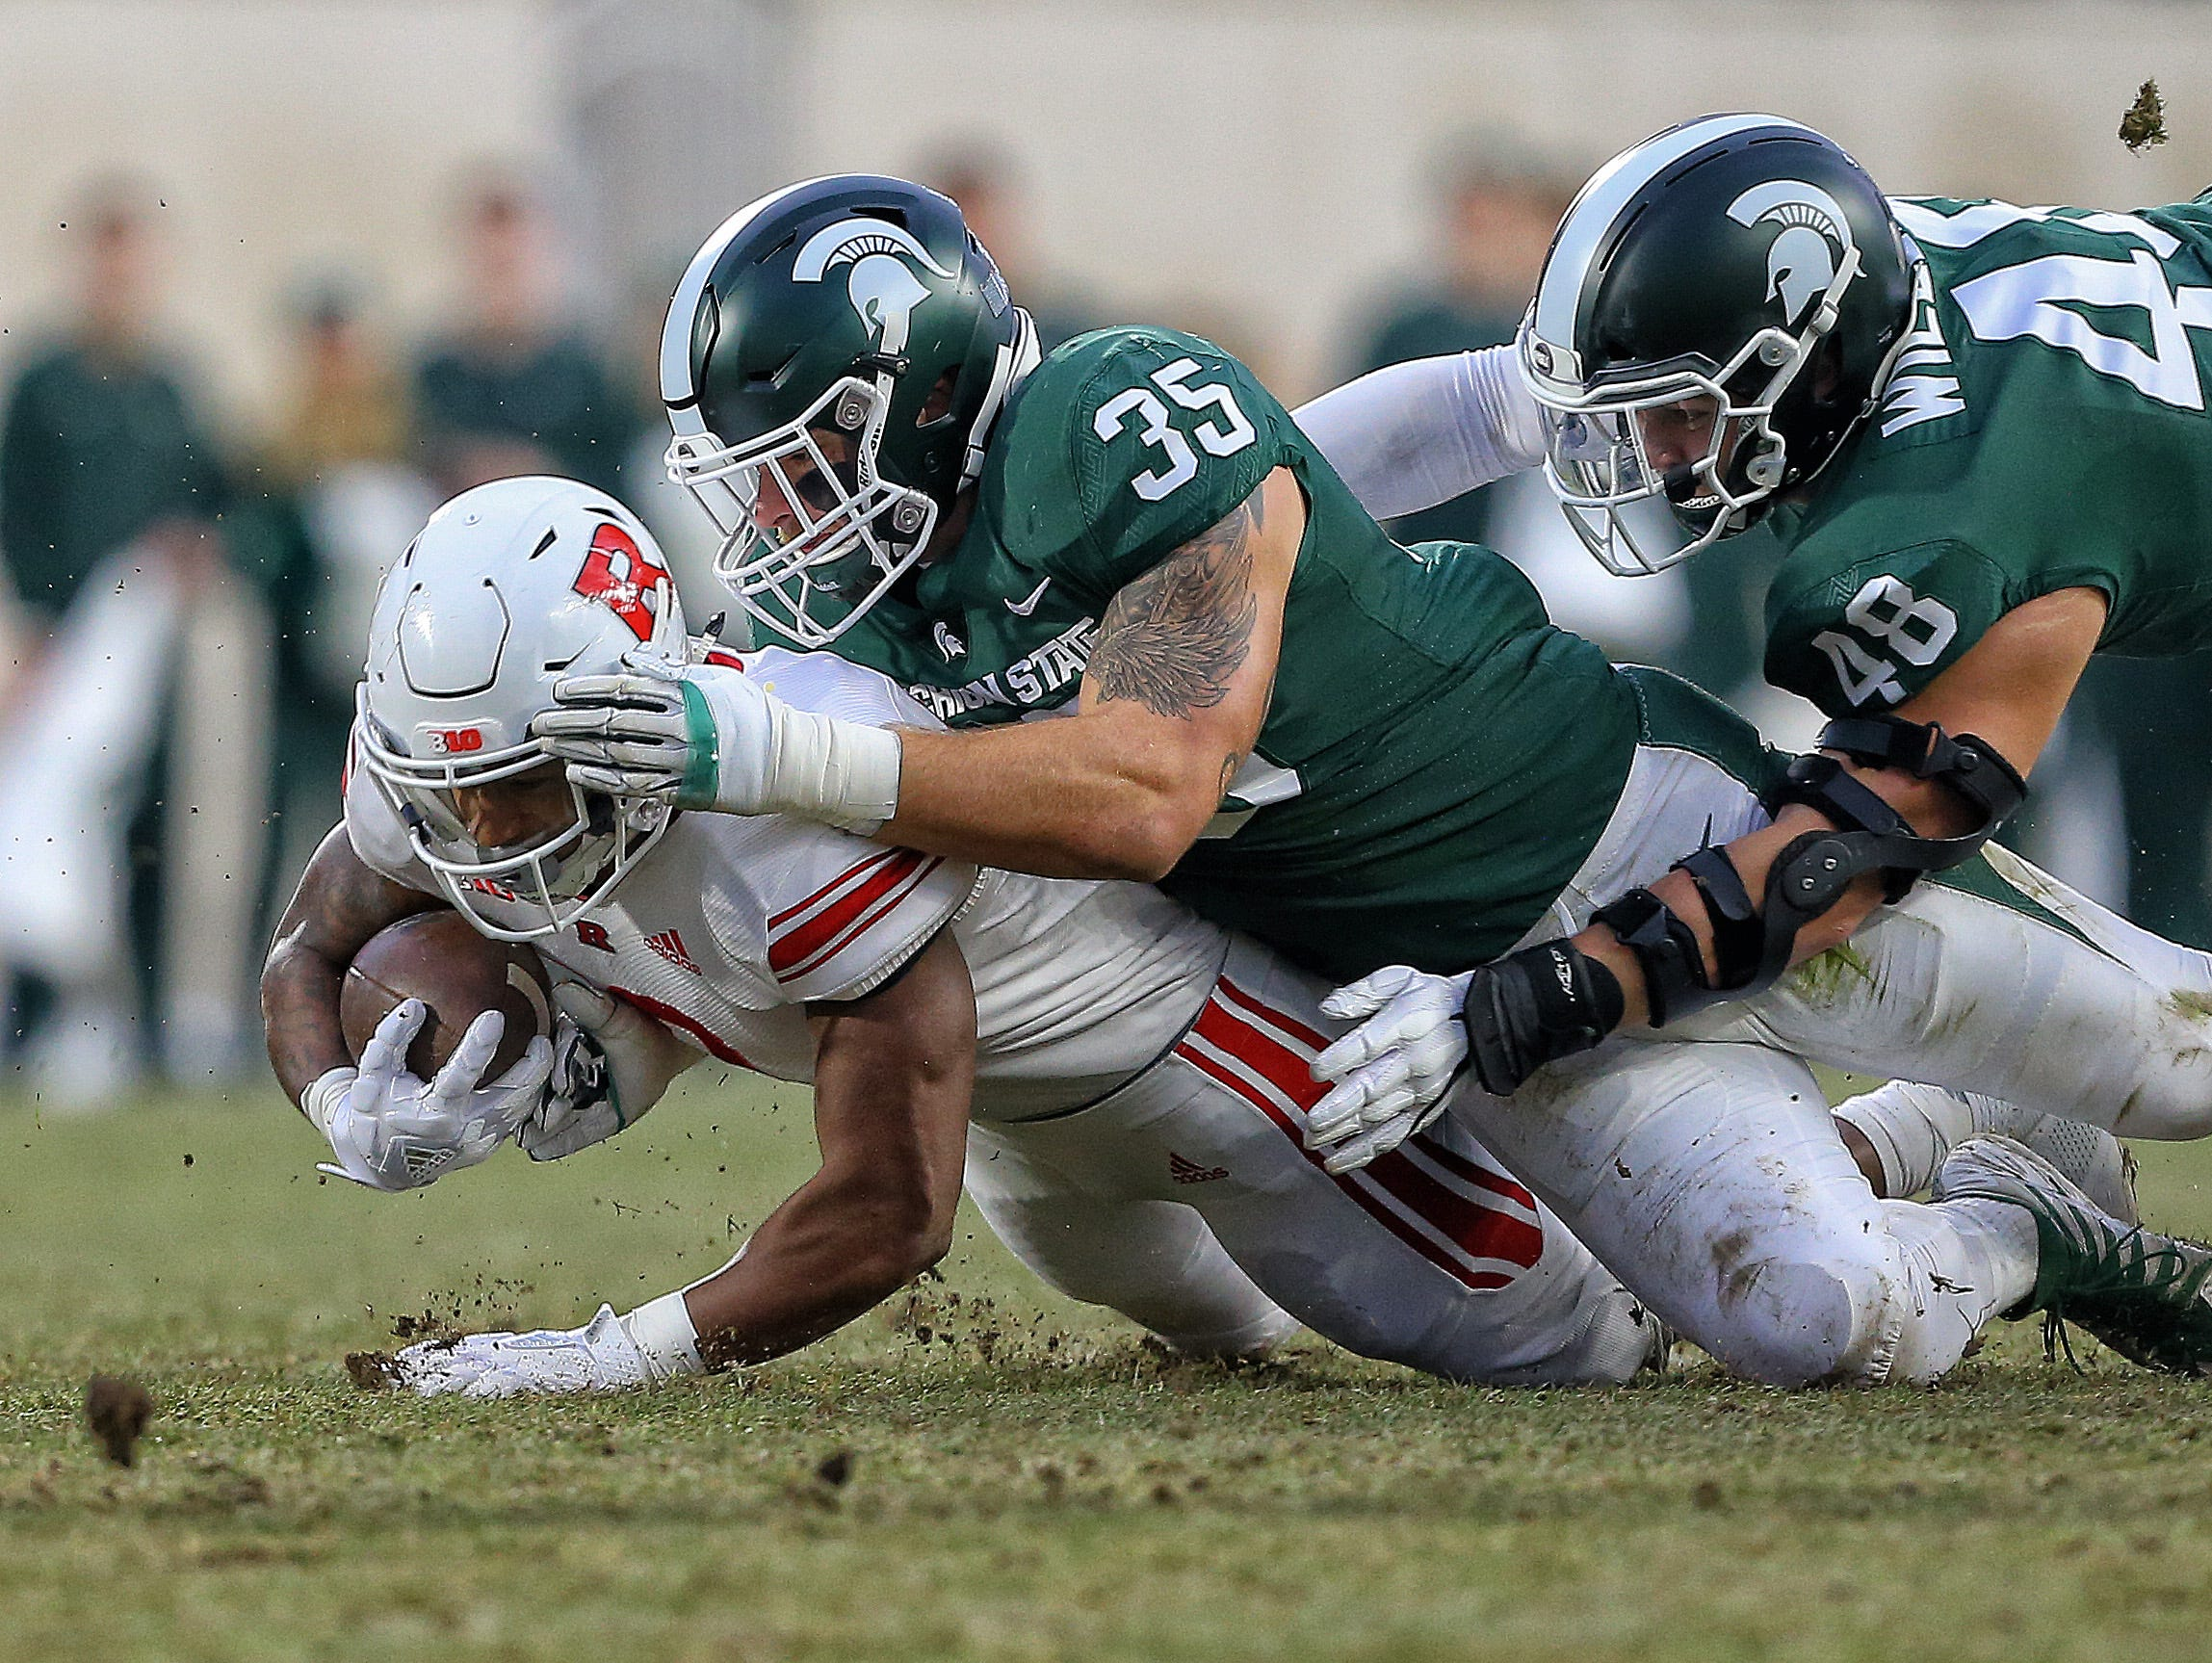 Nov 24, 2018; East Lansing, MI, USA; Rutgers Scarlet Knights running back Raheem Blackshear (2) is tackled by Michigan State Spartans linebacker Joe Bachie (35) during the first quarter of a game at Spartan Stadium. Mandatory Credit: Mike Carter-USA TODAY Sports